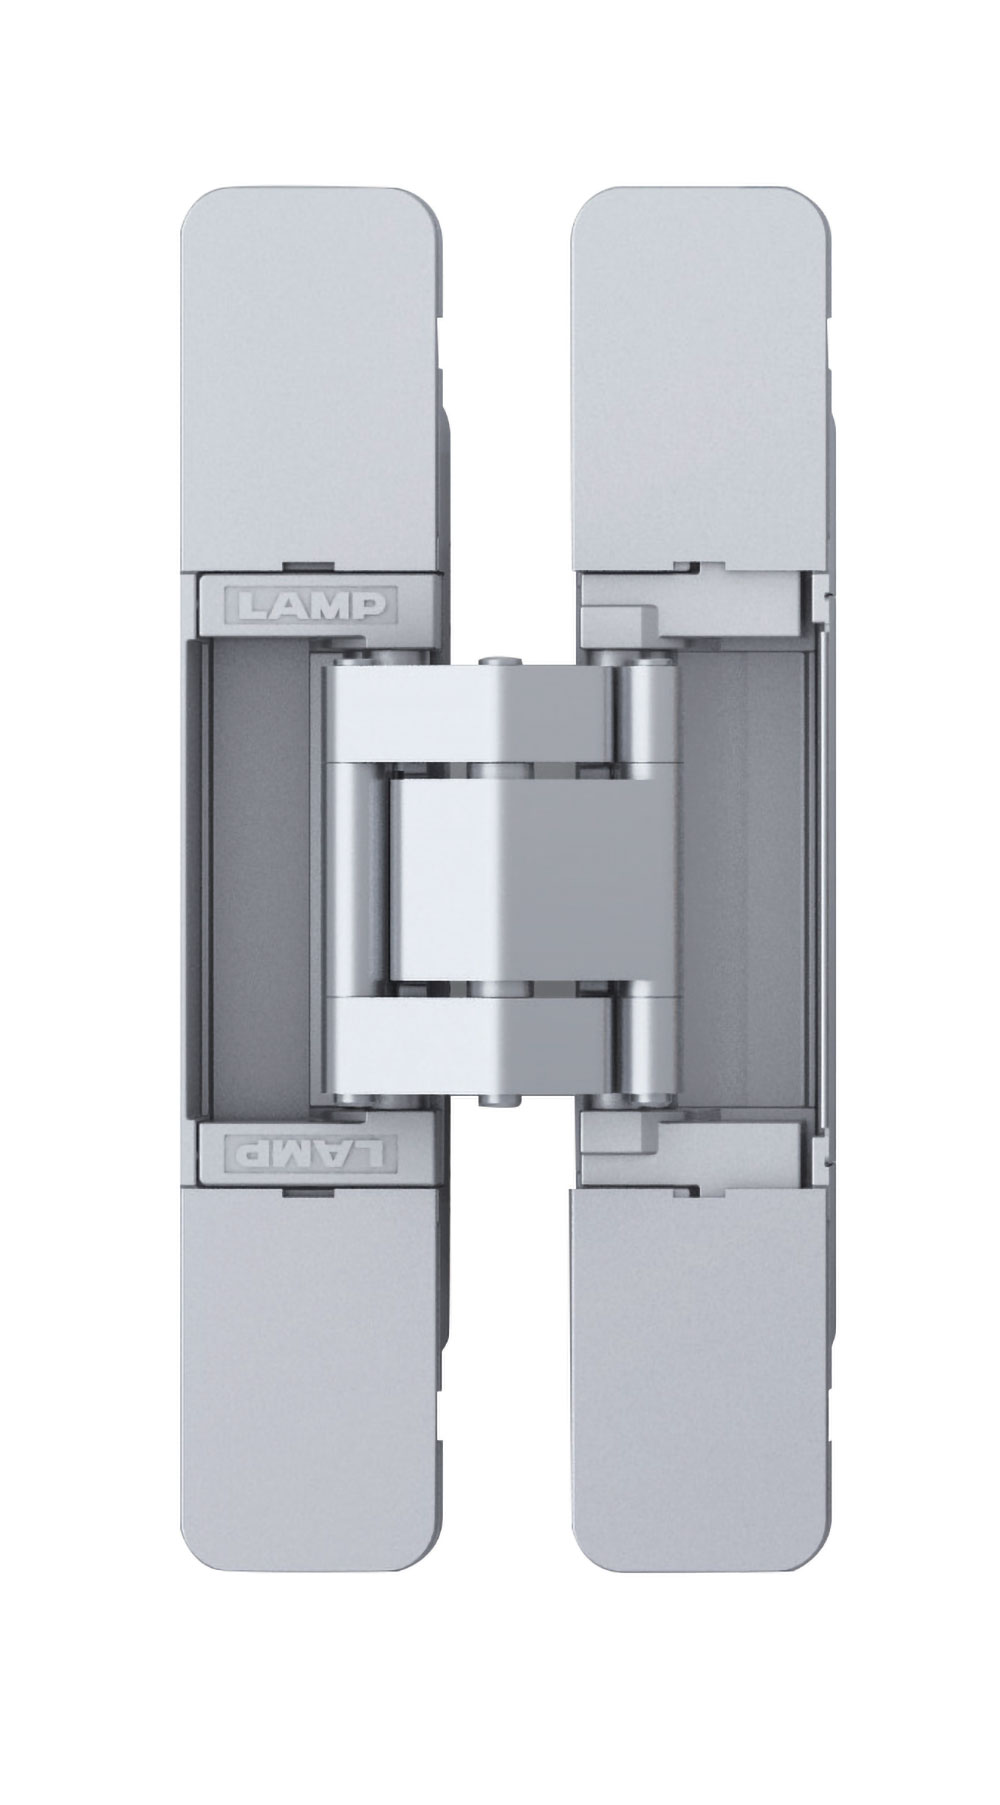 Cabinet Door Concealed Hinges Hardware Components By